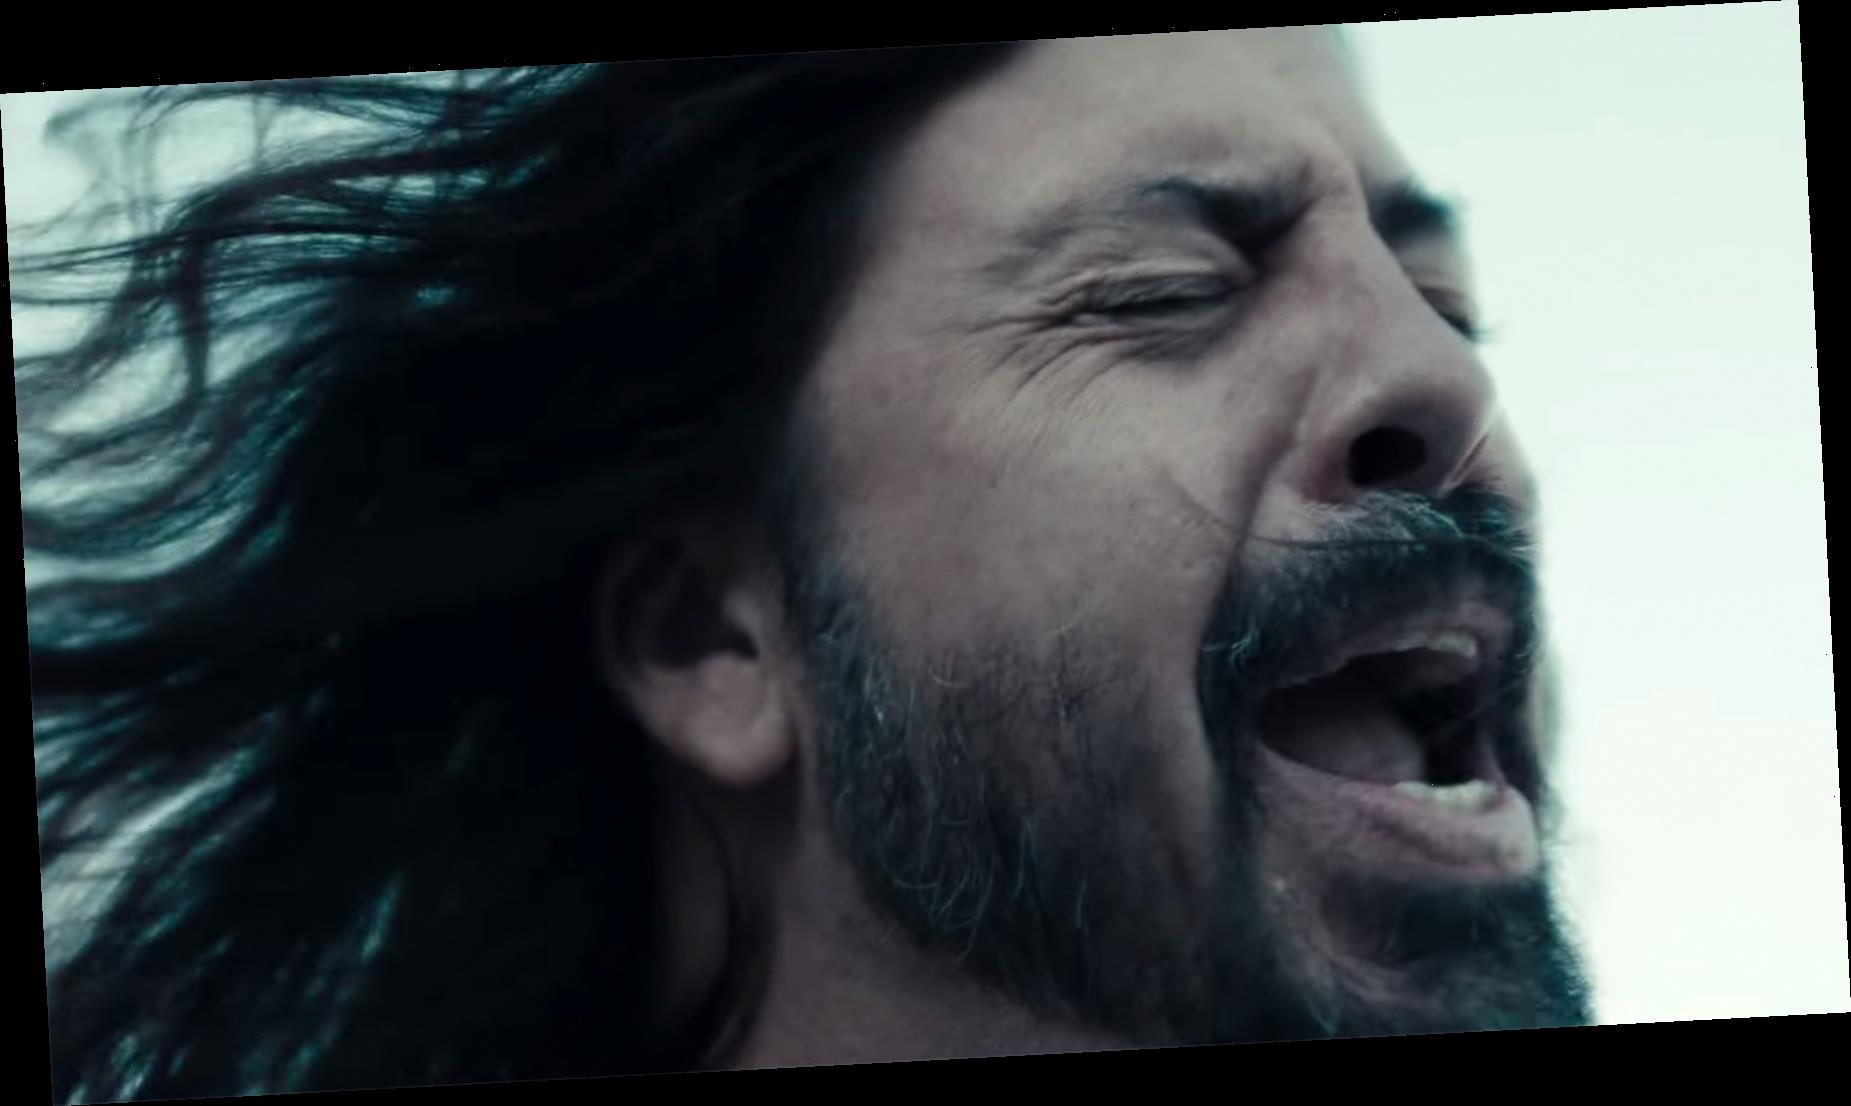 Foo Fighters Call Upon the Youth in 'Waiting on a War' Video